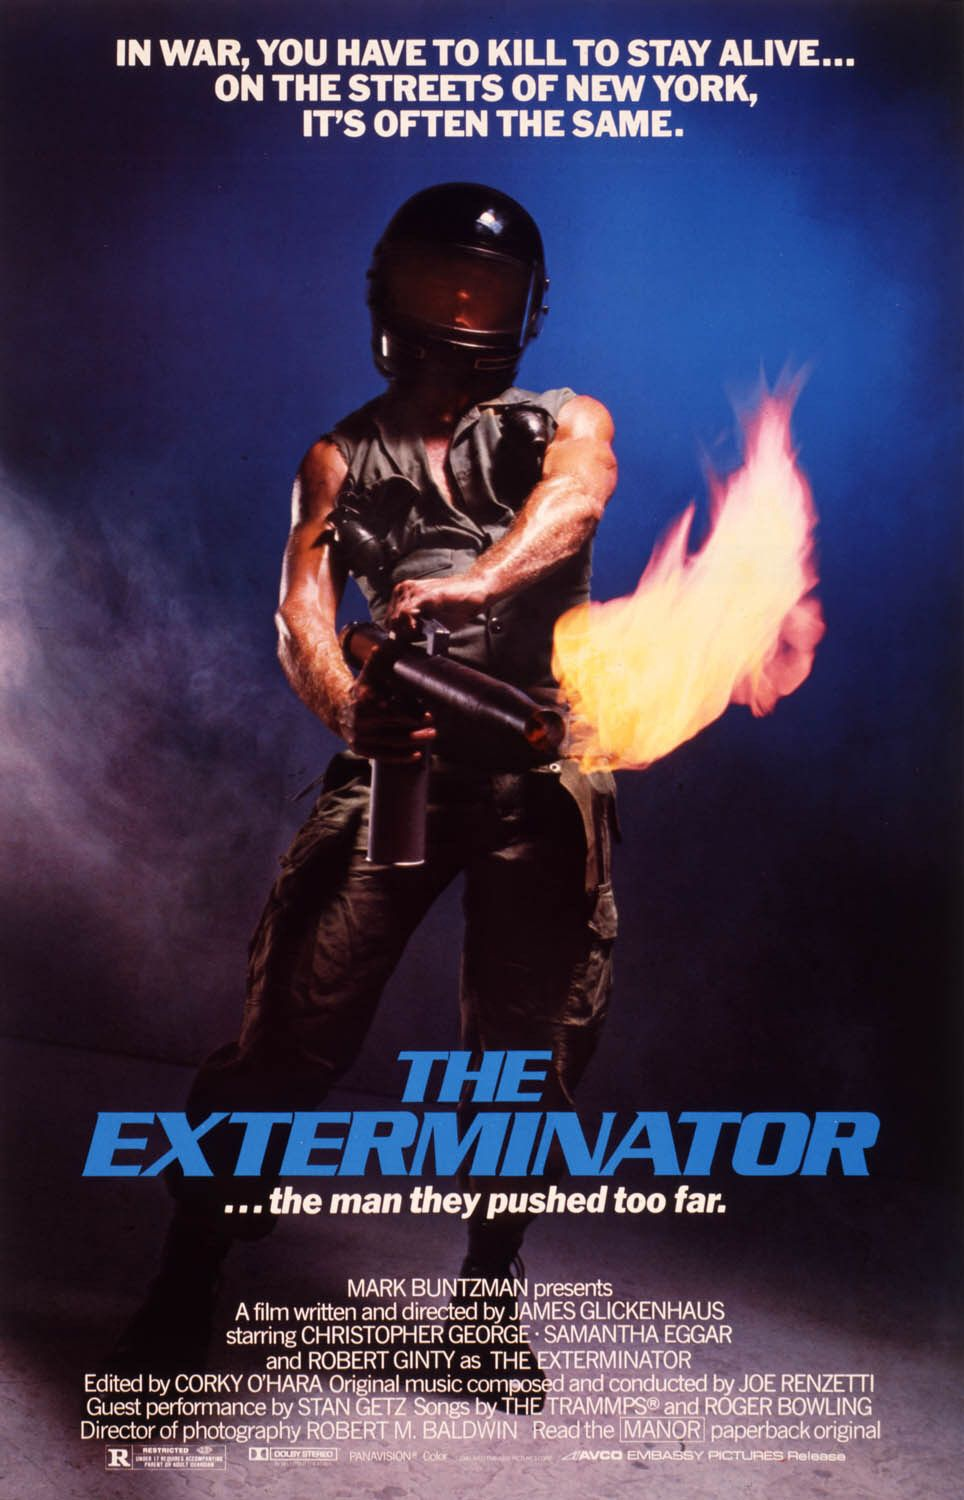 The-Exterminator-Movie-Poster.jpg